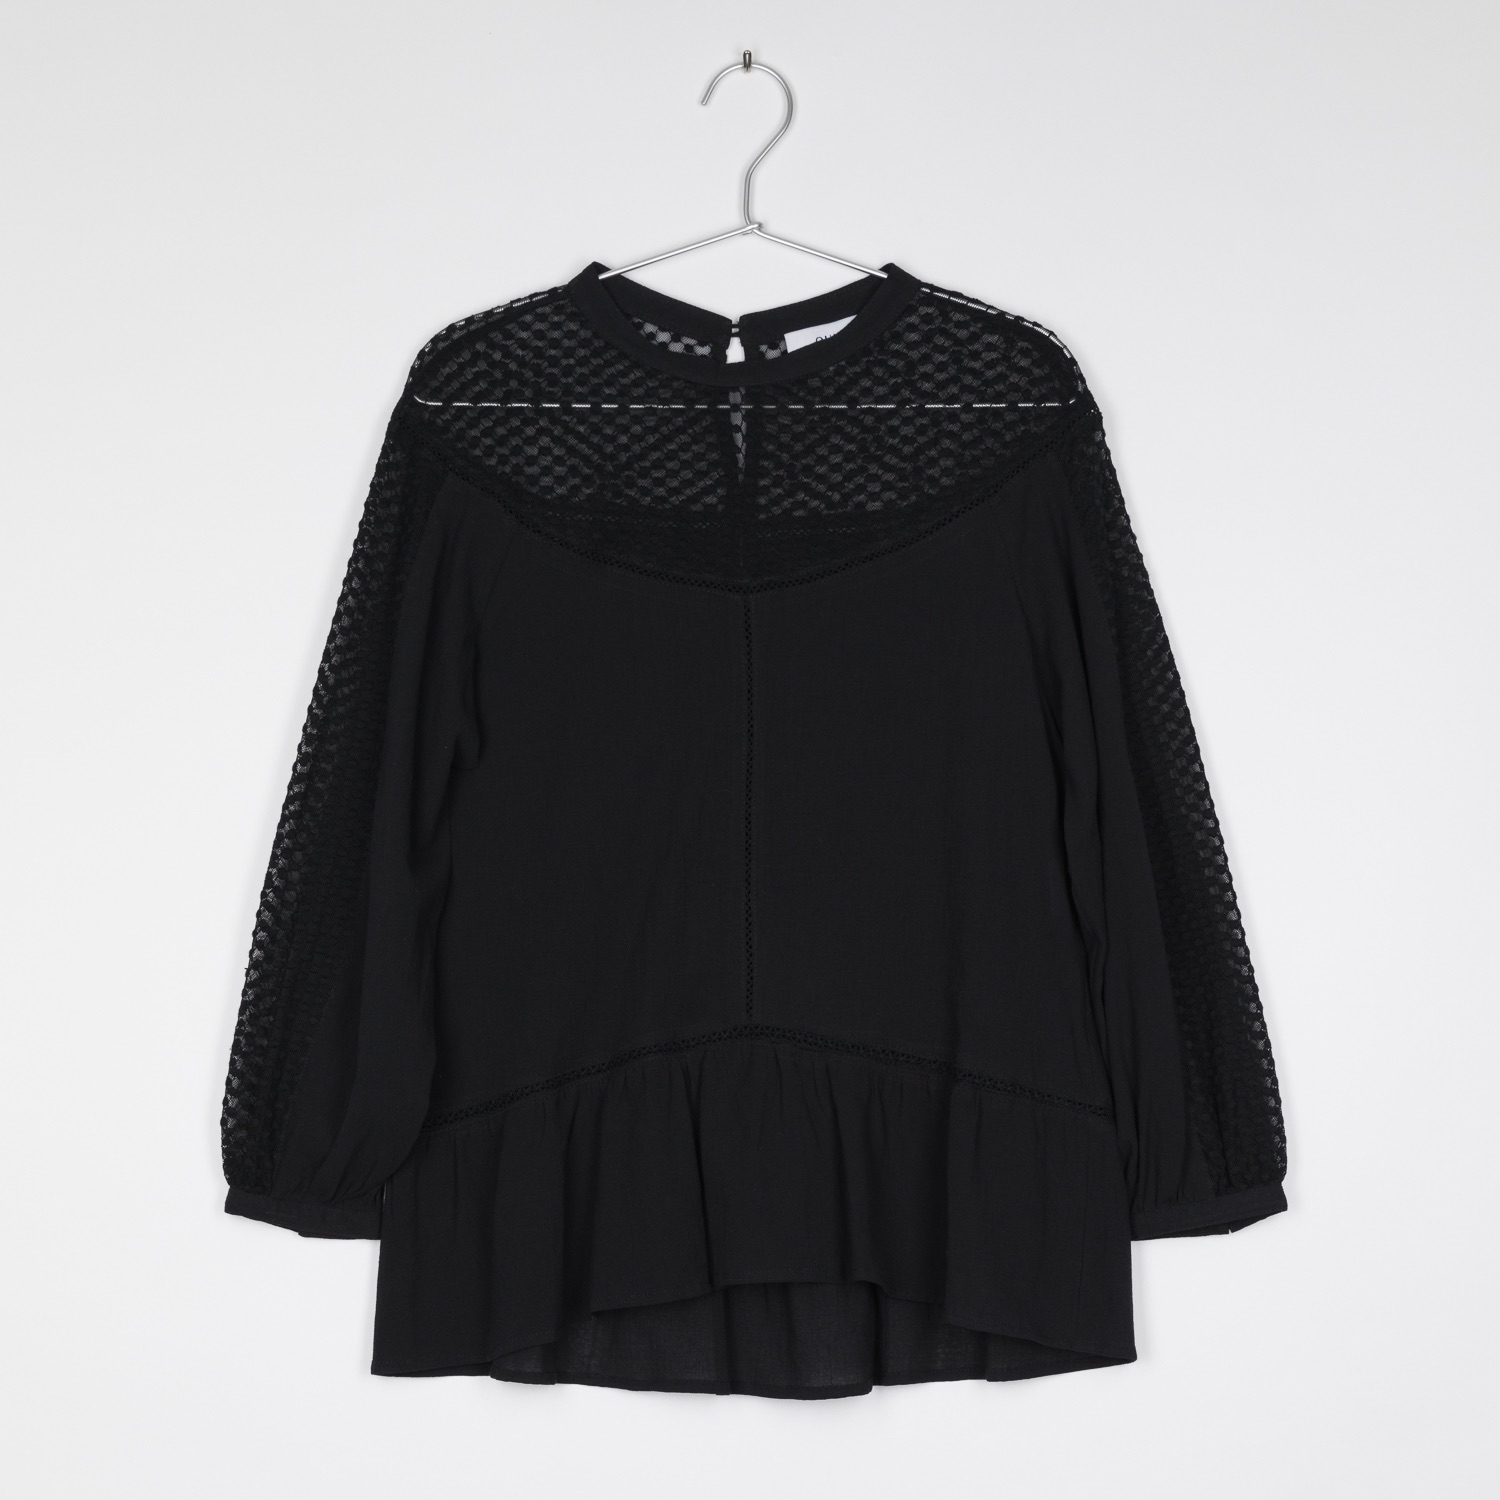 EMILY Cotton and Linen Lace Blouse by Quin on curated-crowd.com